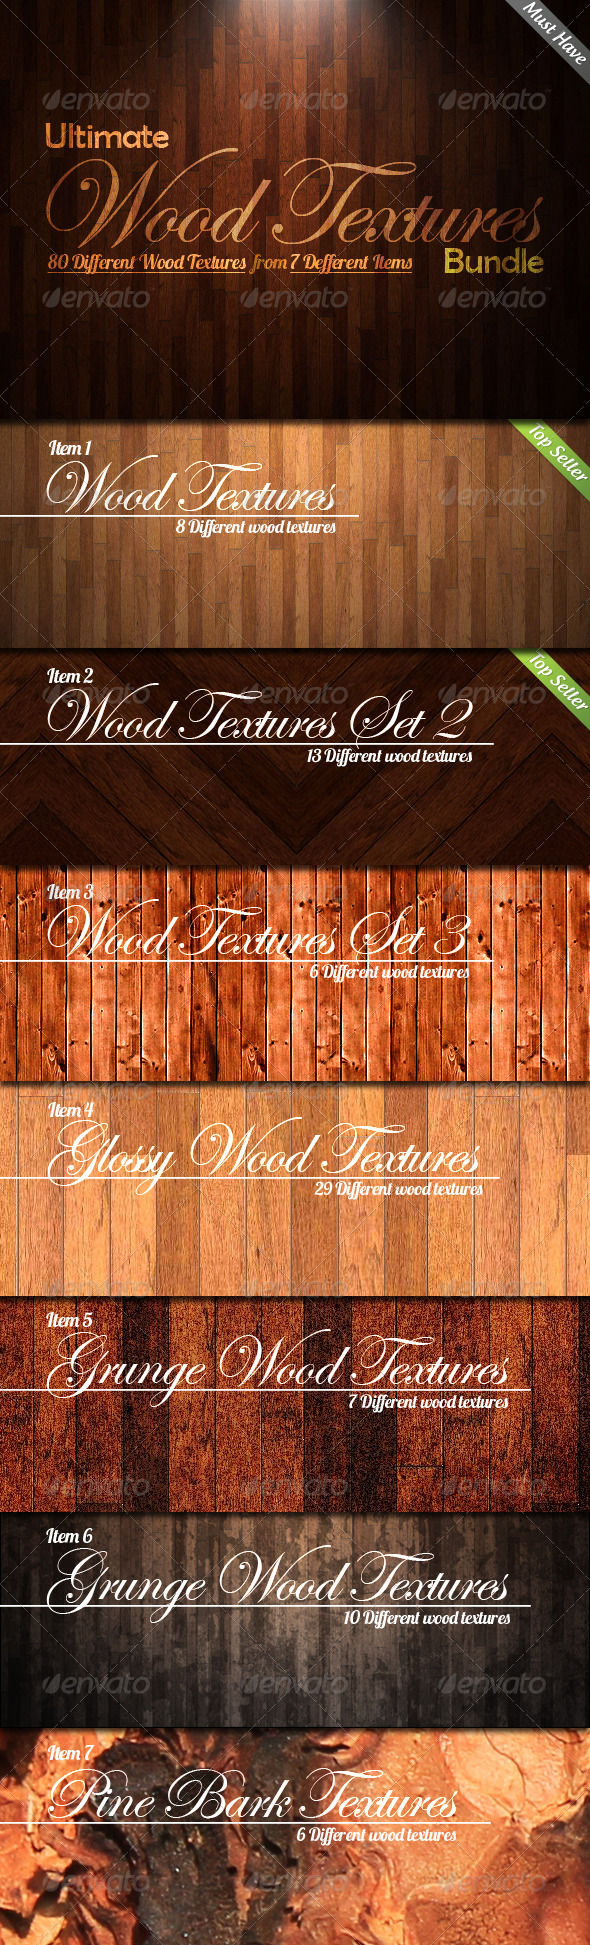 Ultimate Wood Textures Bundle - Wood Textures